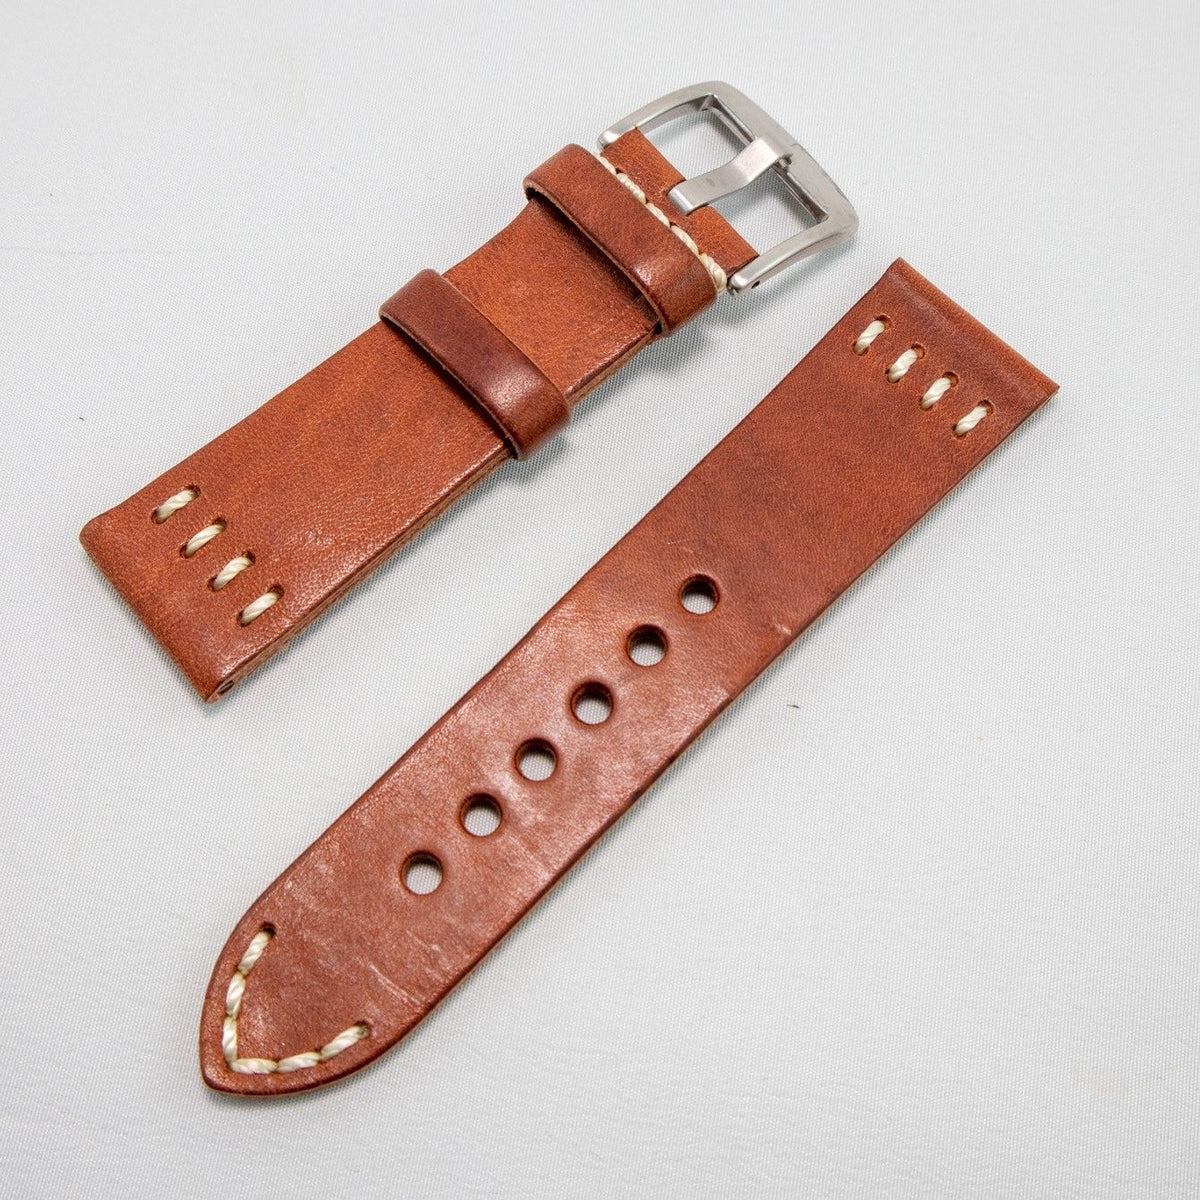 Alpine Watchstrap - Vintage Leather